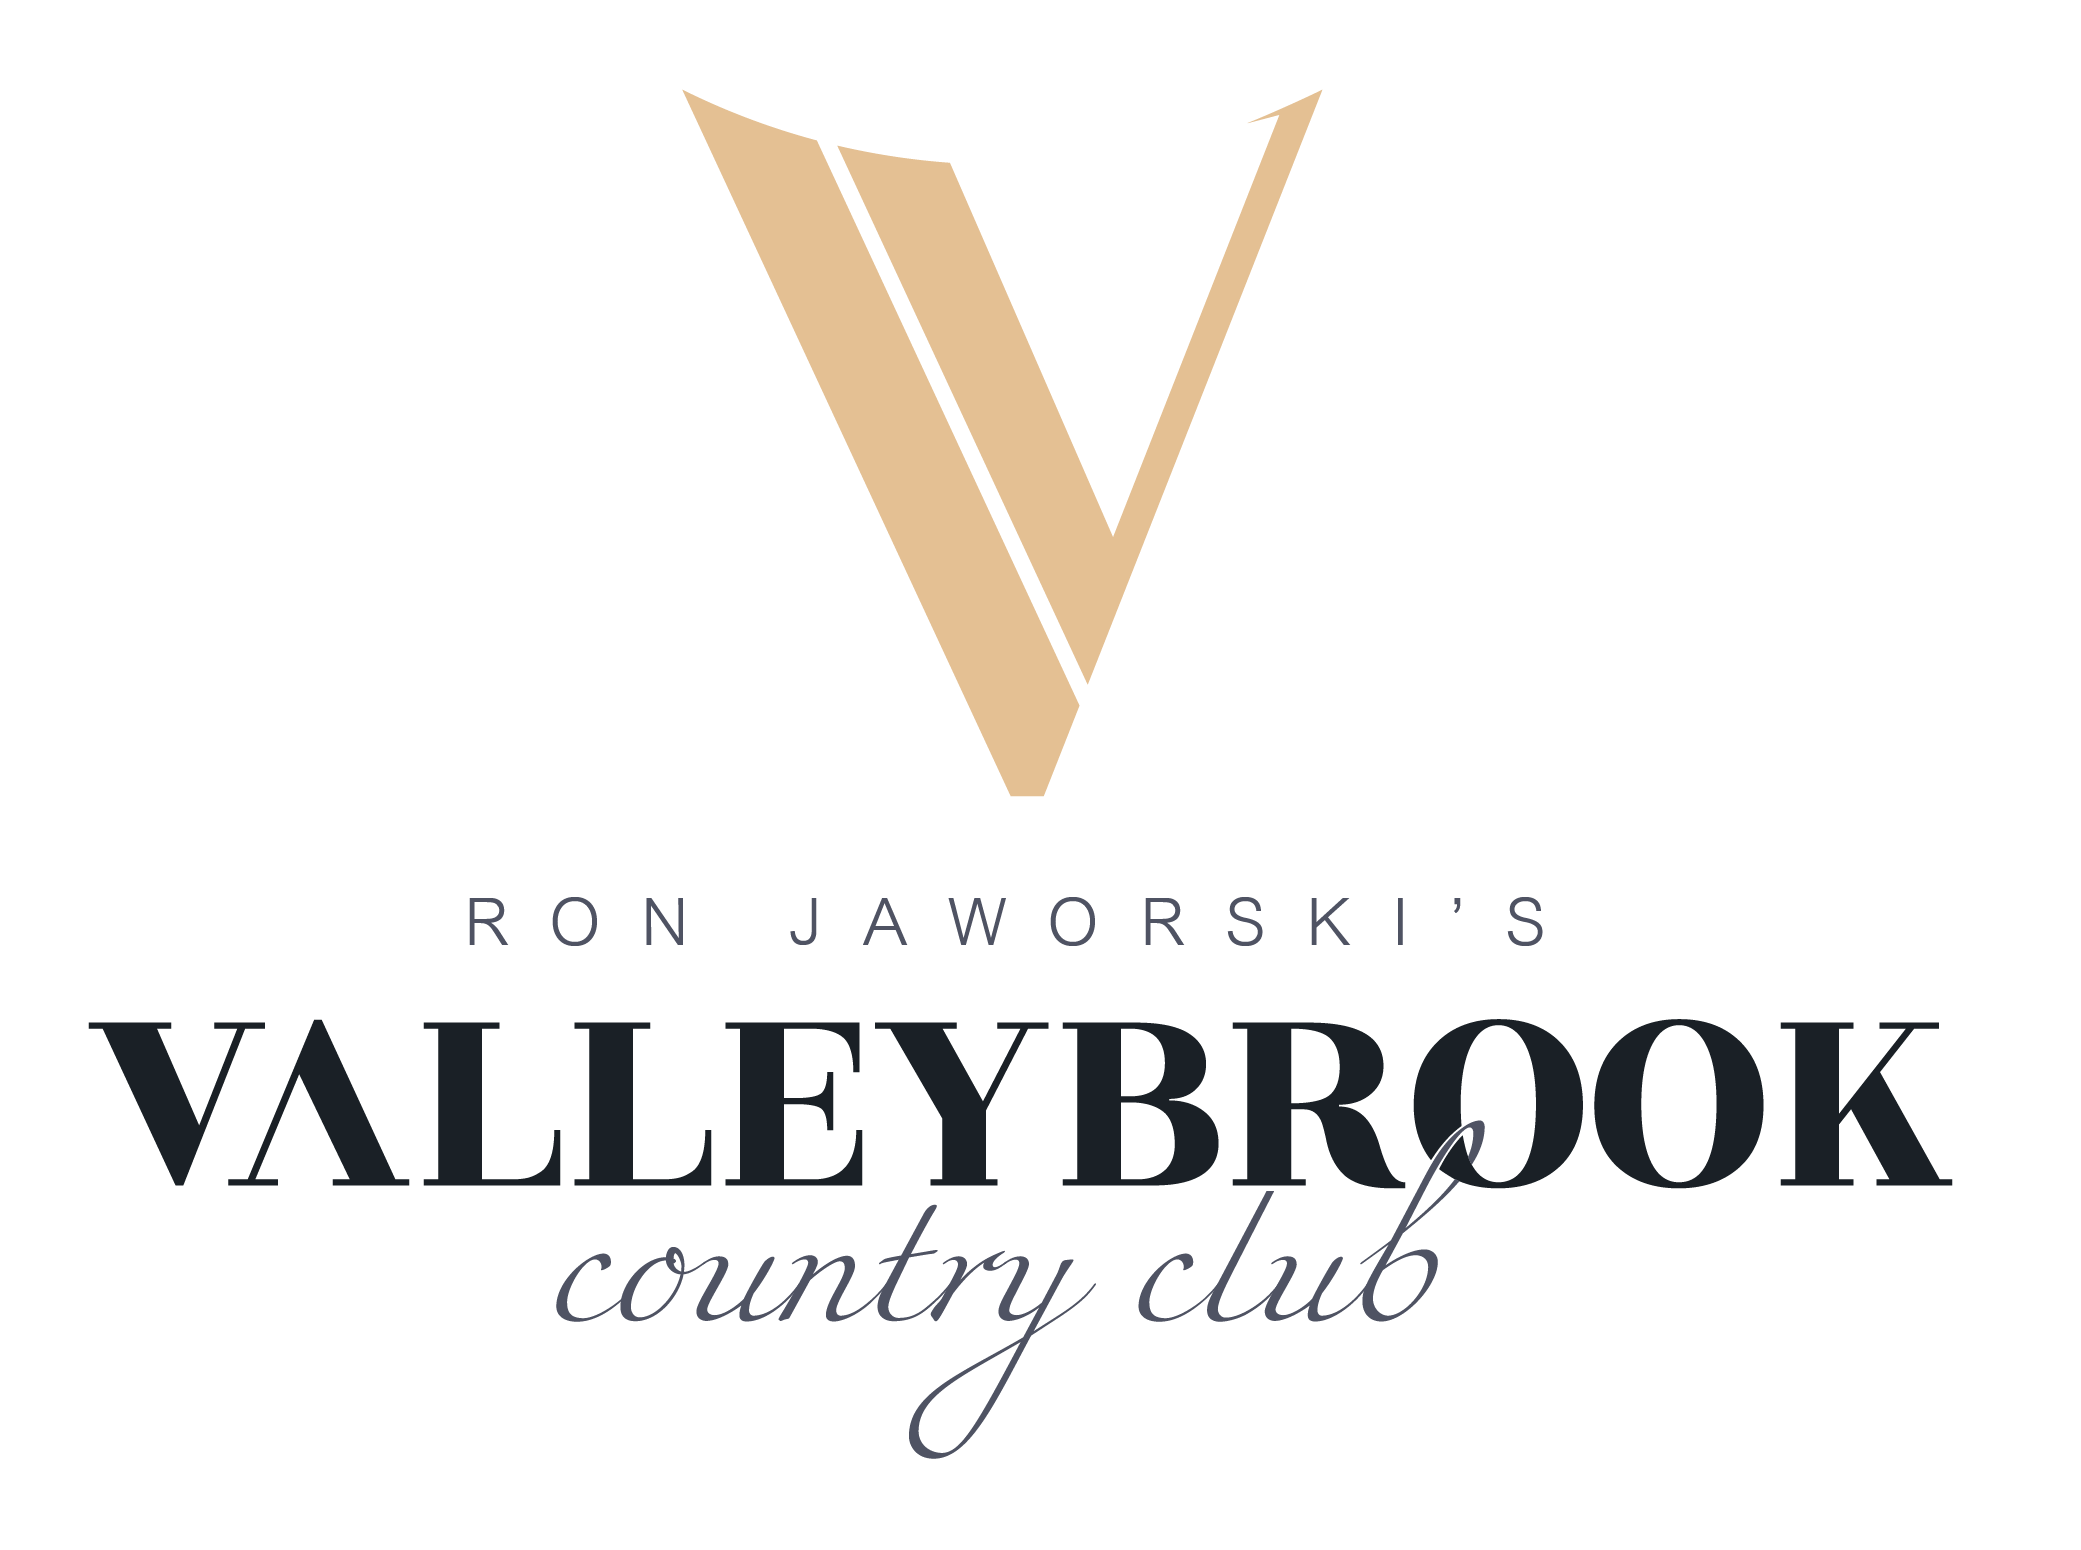 Ron Jaworski's Valleybrook Country Club